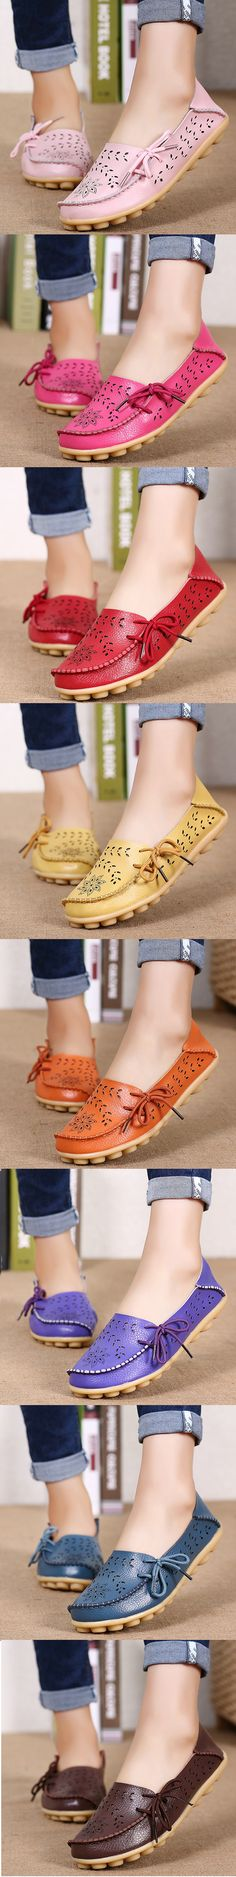 US$16.60 Large Size Breathable Hollow Out Flat Lace Up Soft Leather Shoes